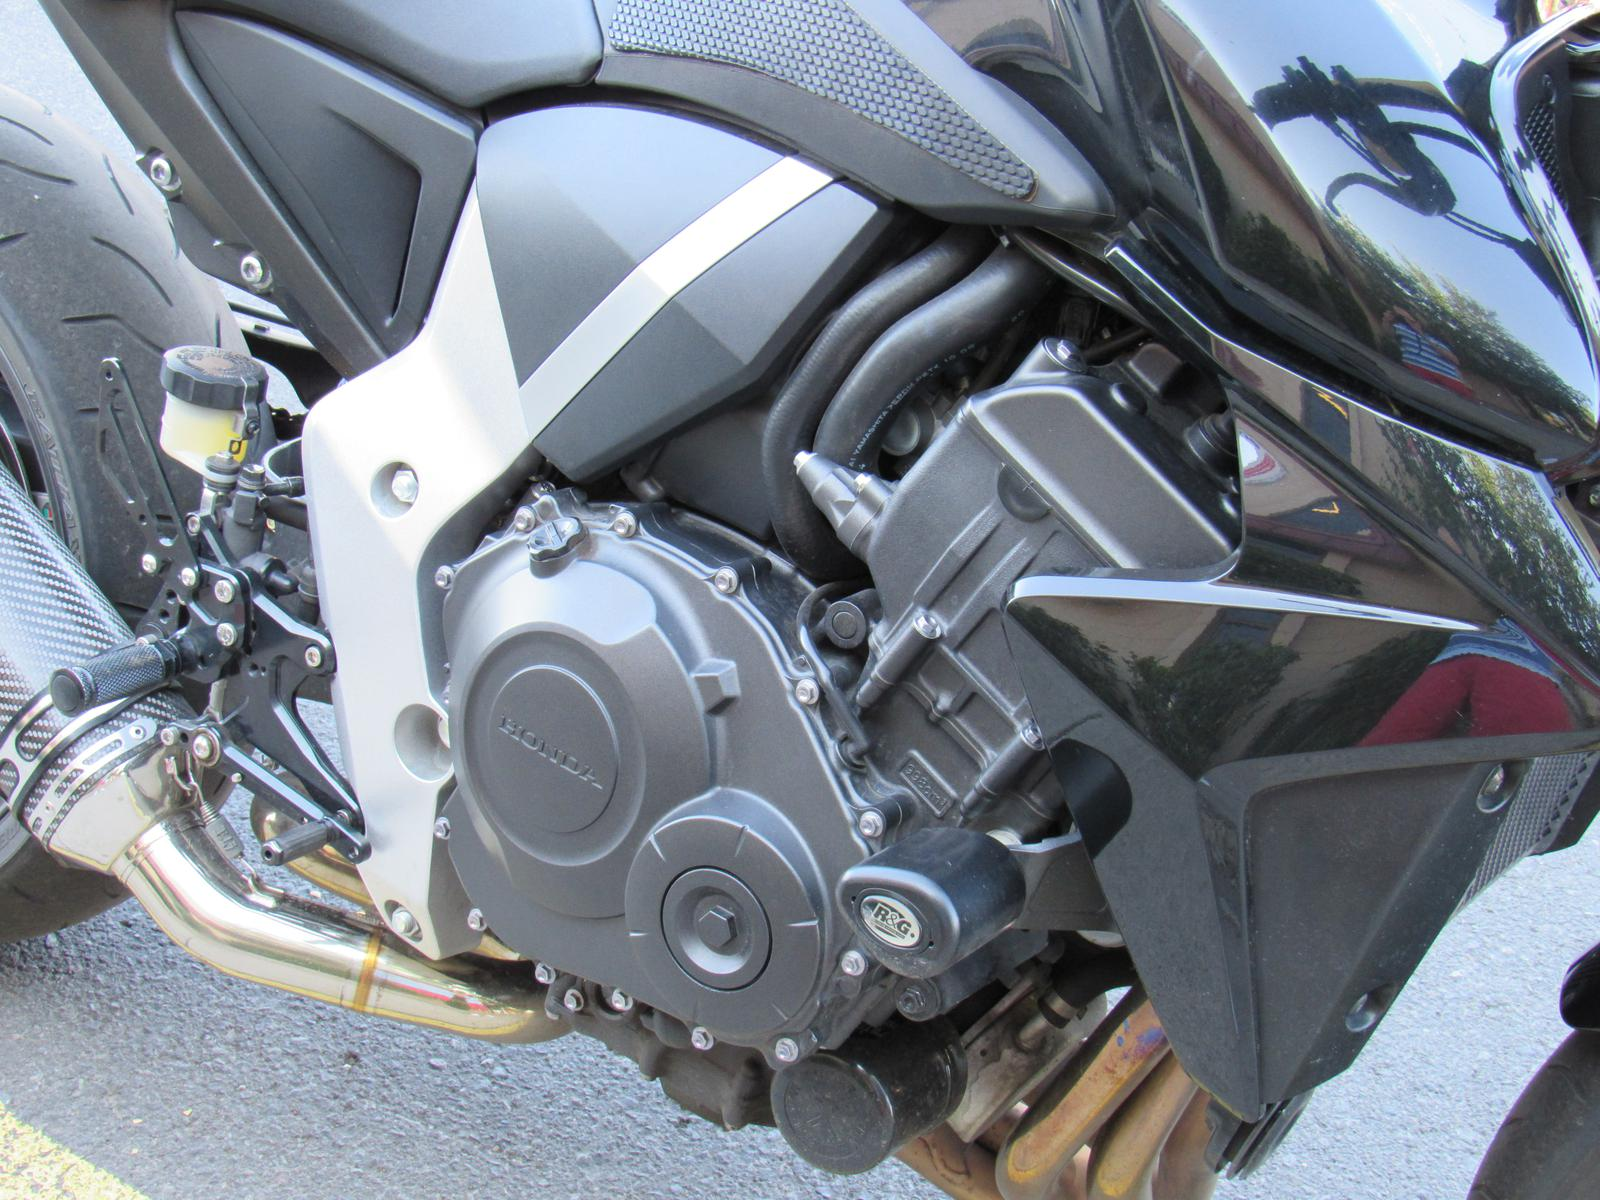 2011 honda cb1000r for sale in bend, or. pro caliber bend bend, or